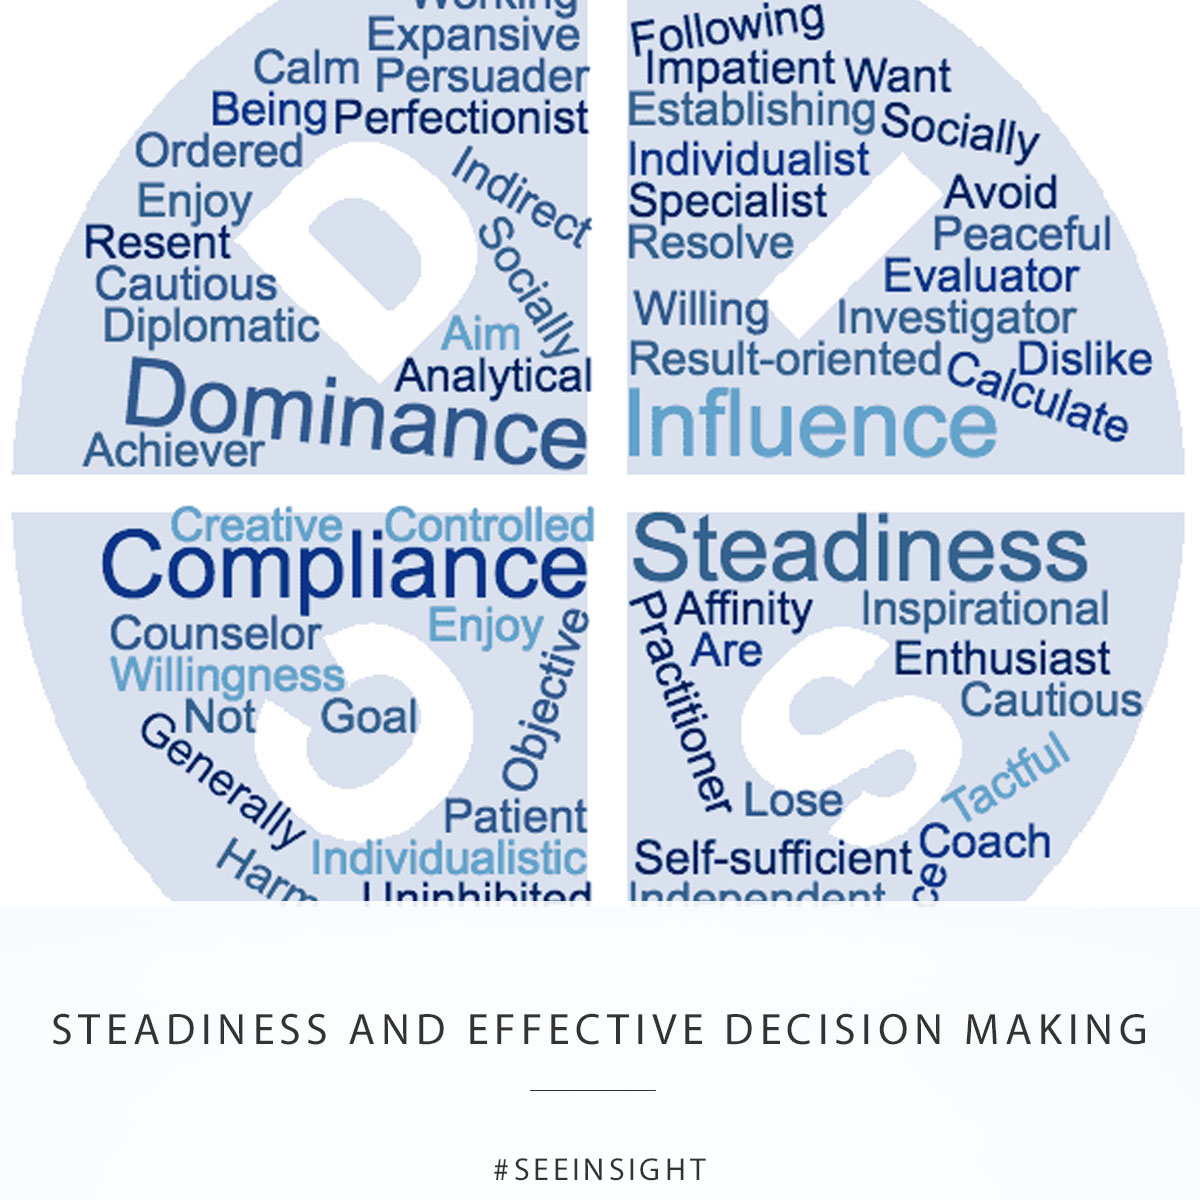 Steadiness and Effective Decision Making